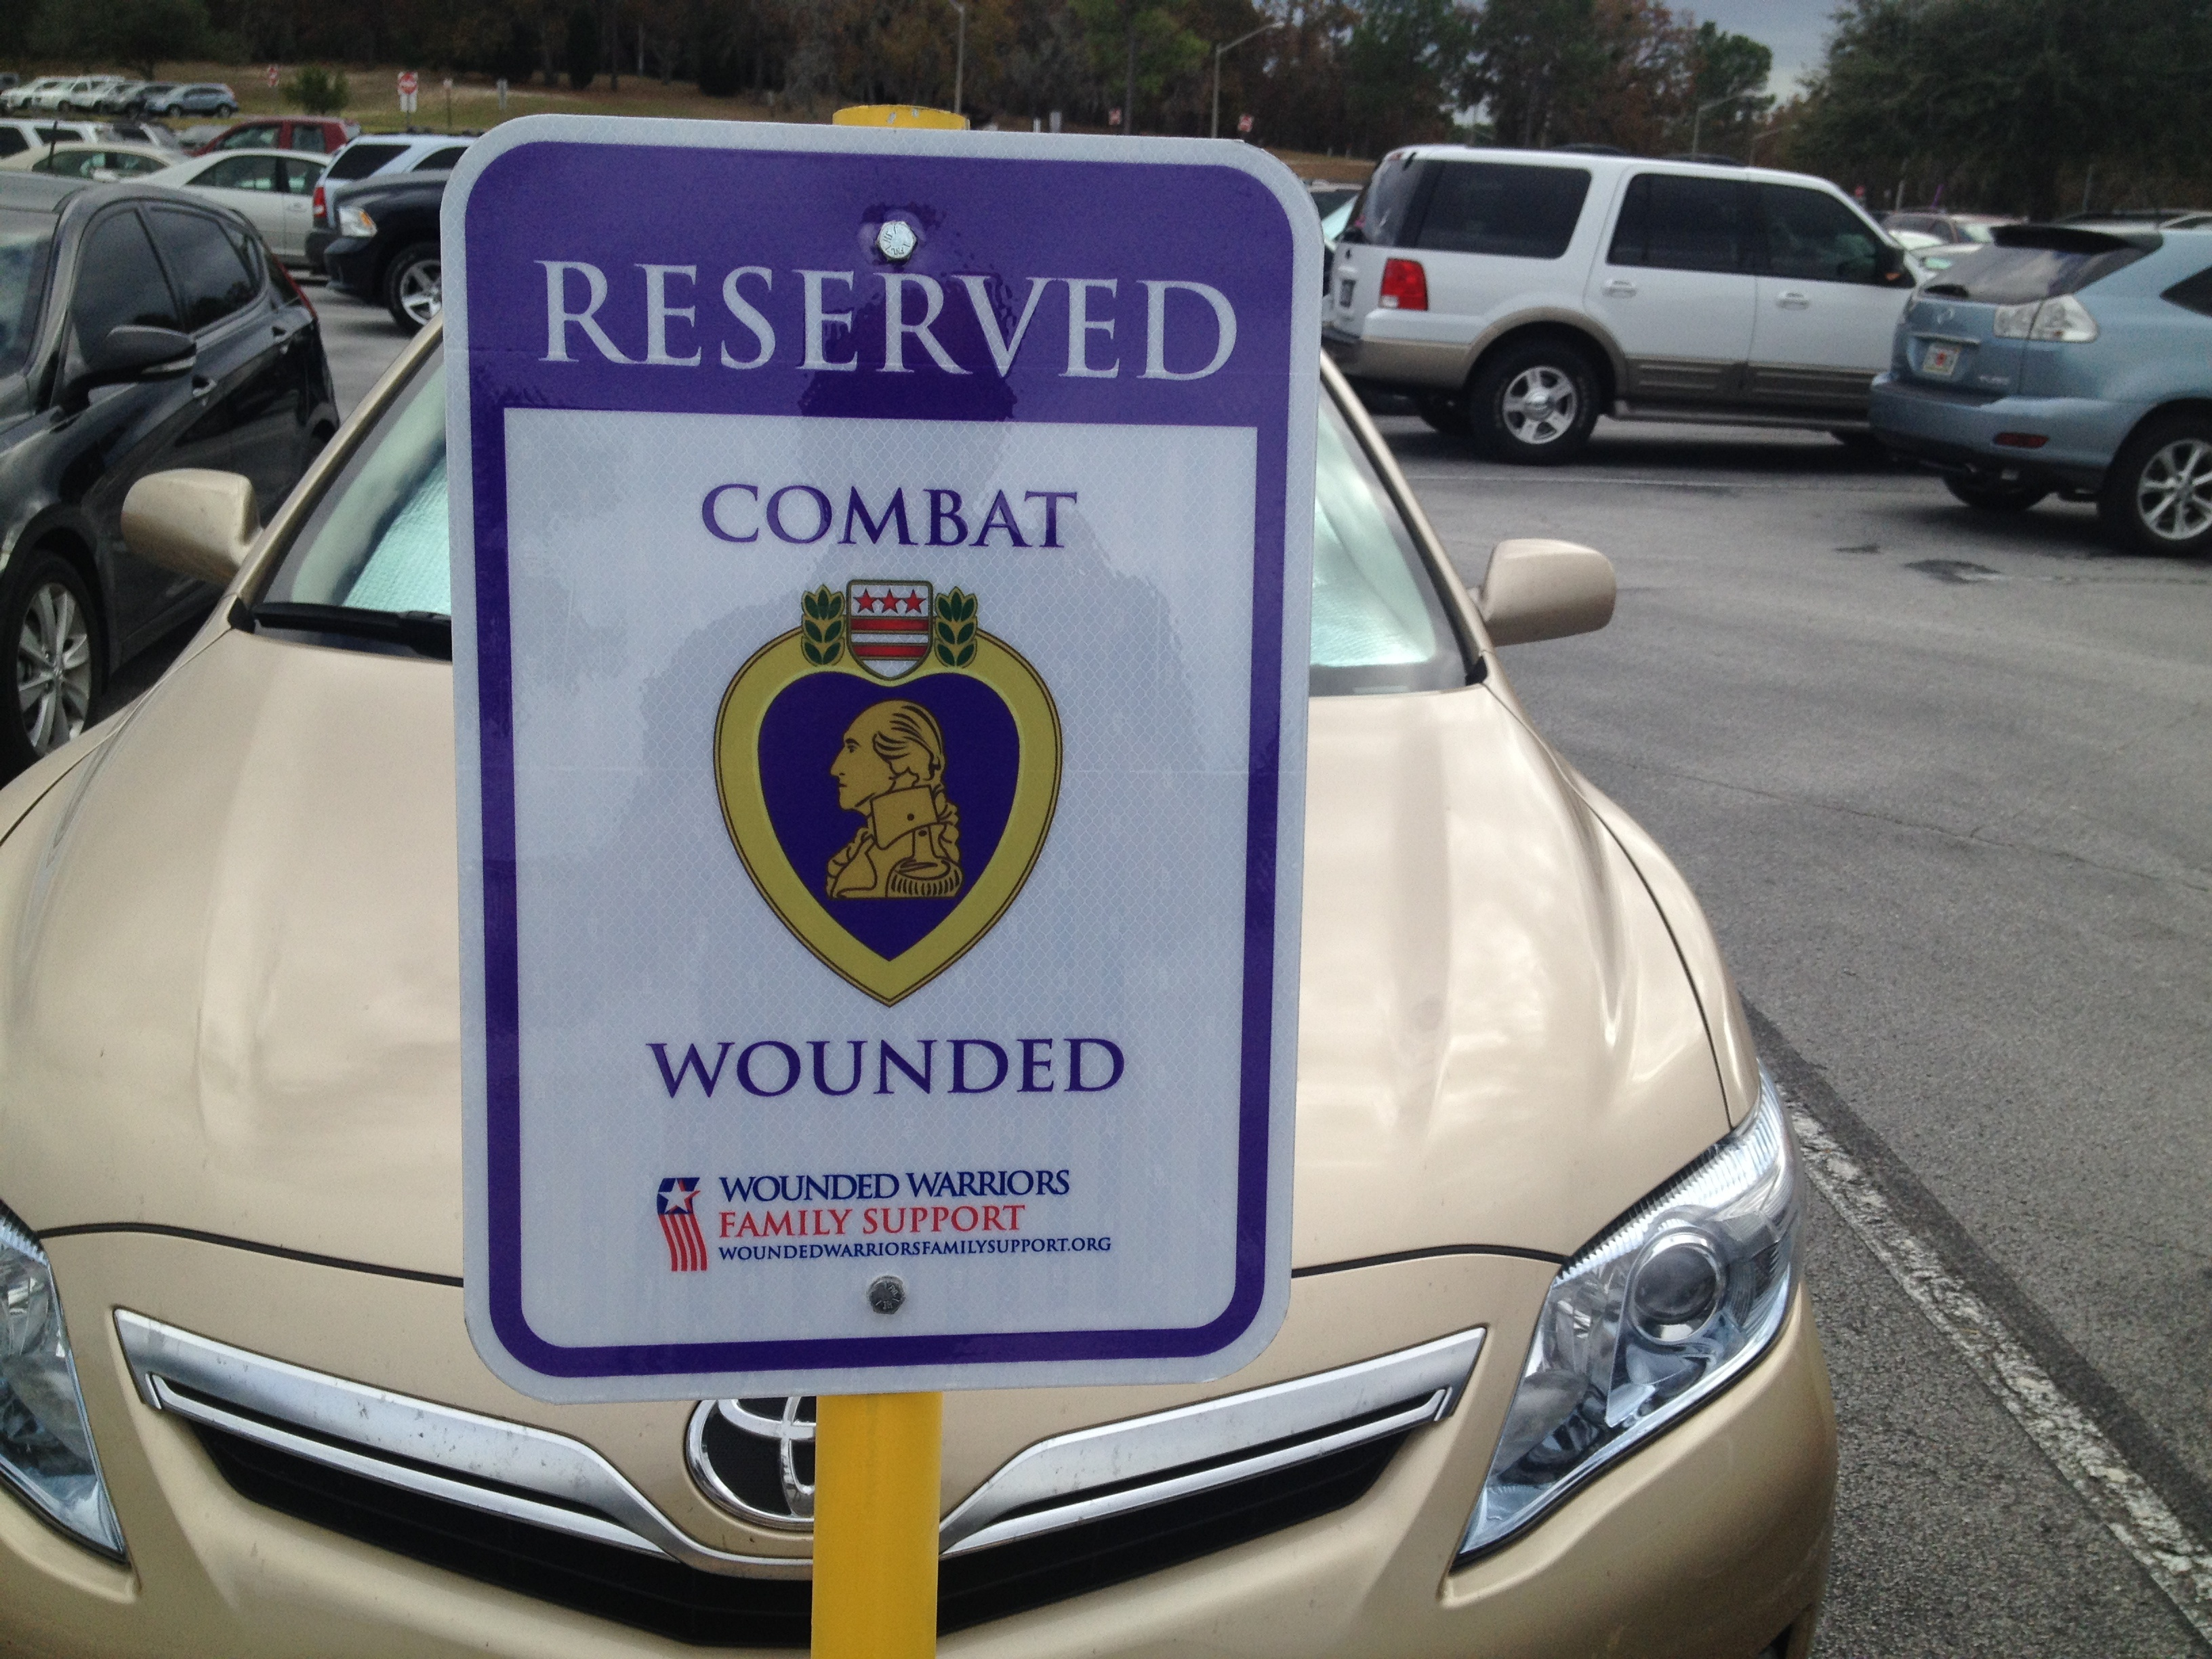 Combat_Wounded_Parking_2.jpg